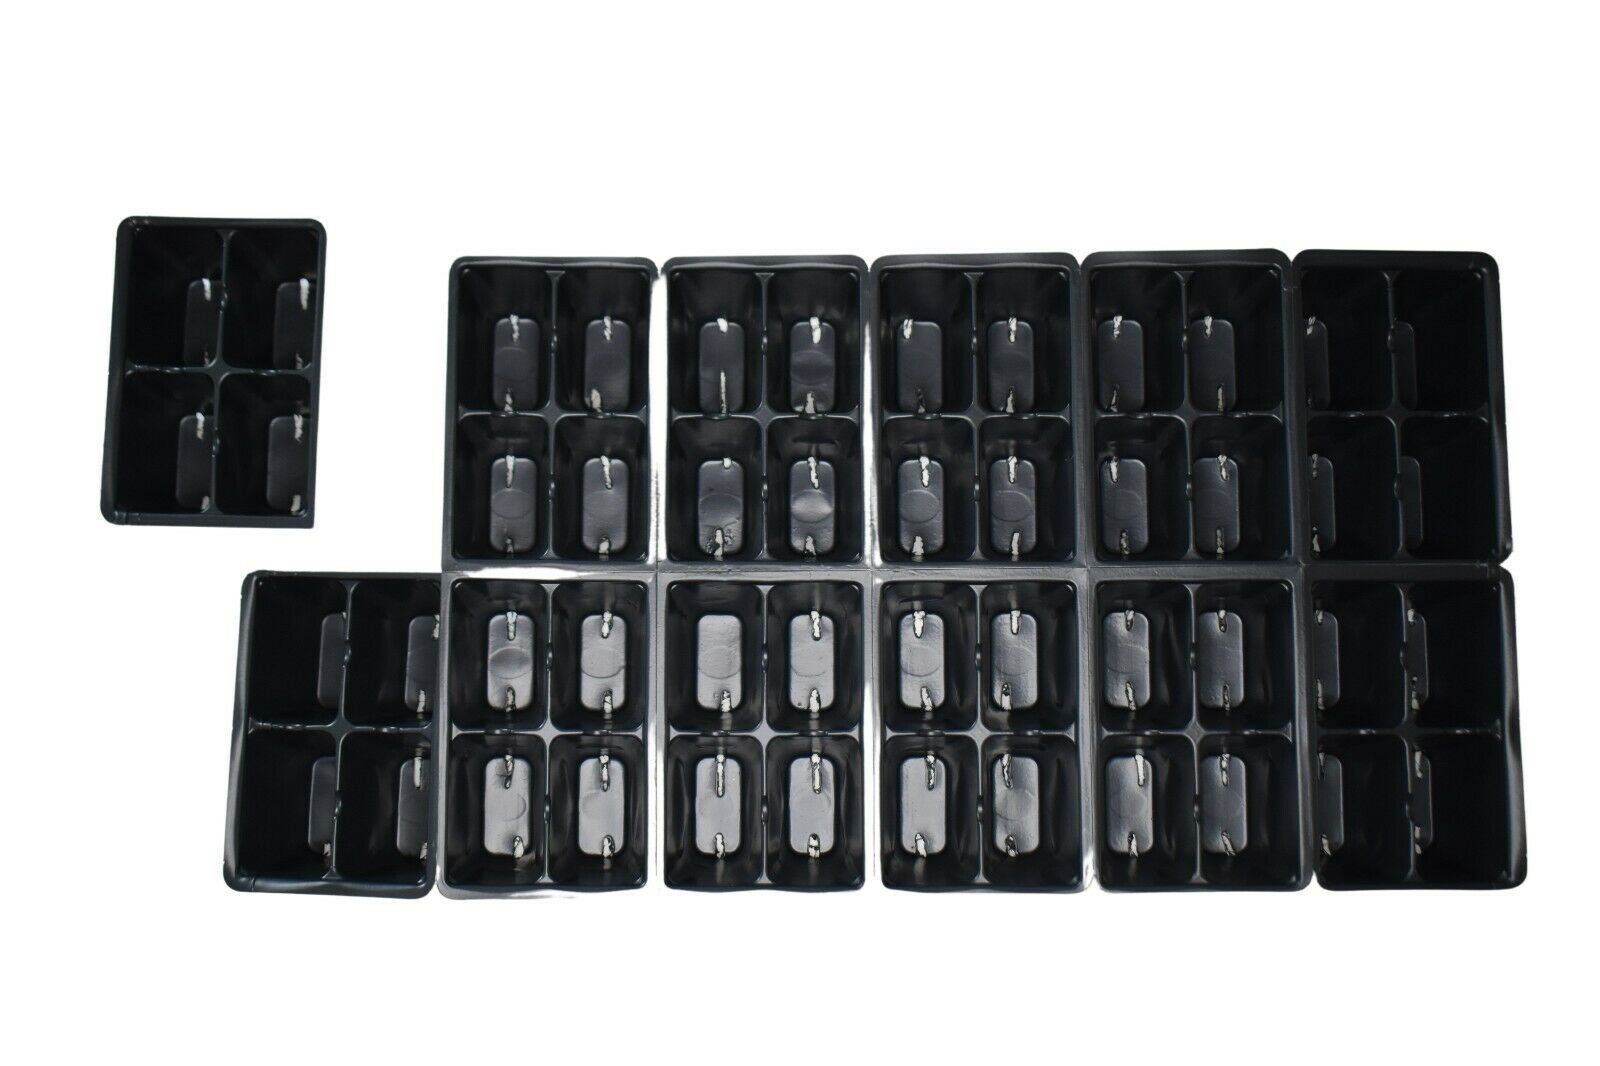 10 SHEETS Seed Starter Trays Inserts Packs - 1204 style - 480 cells 48/tray